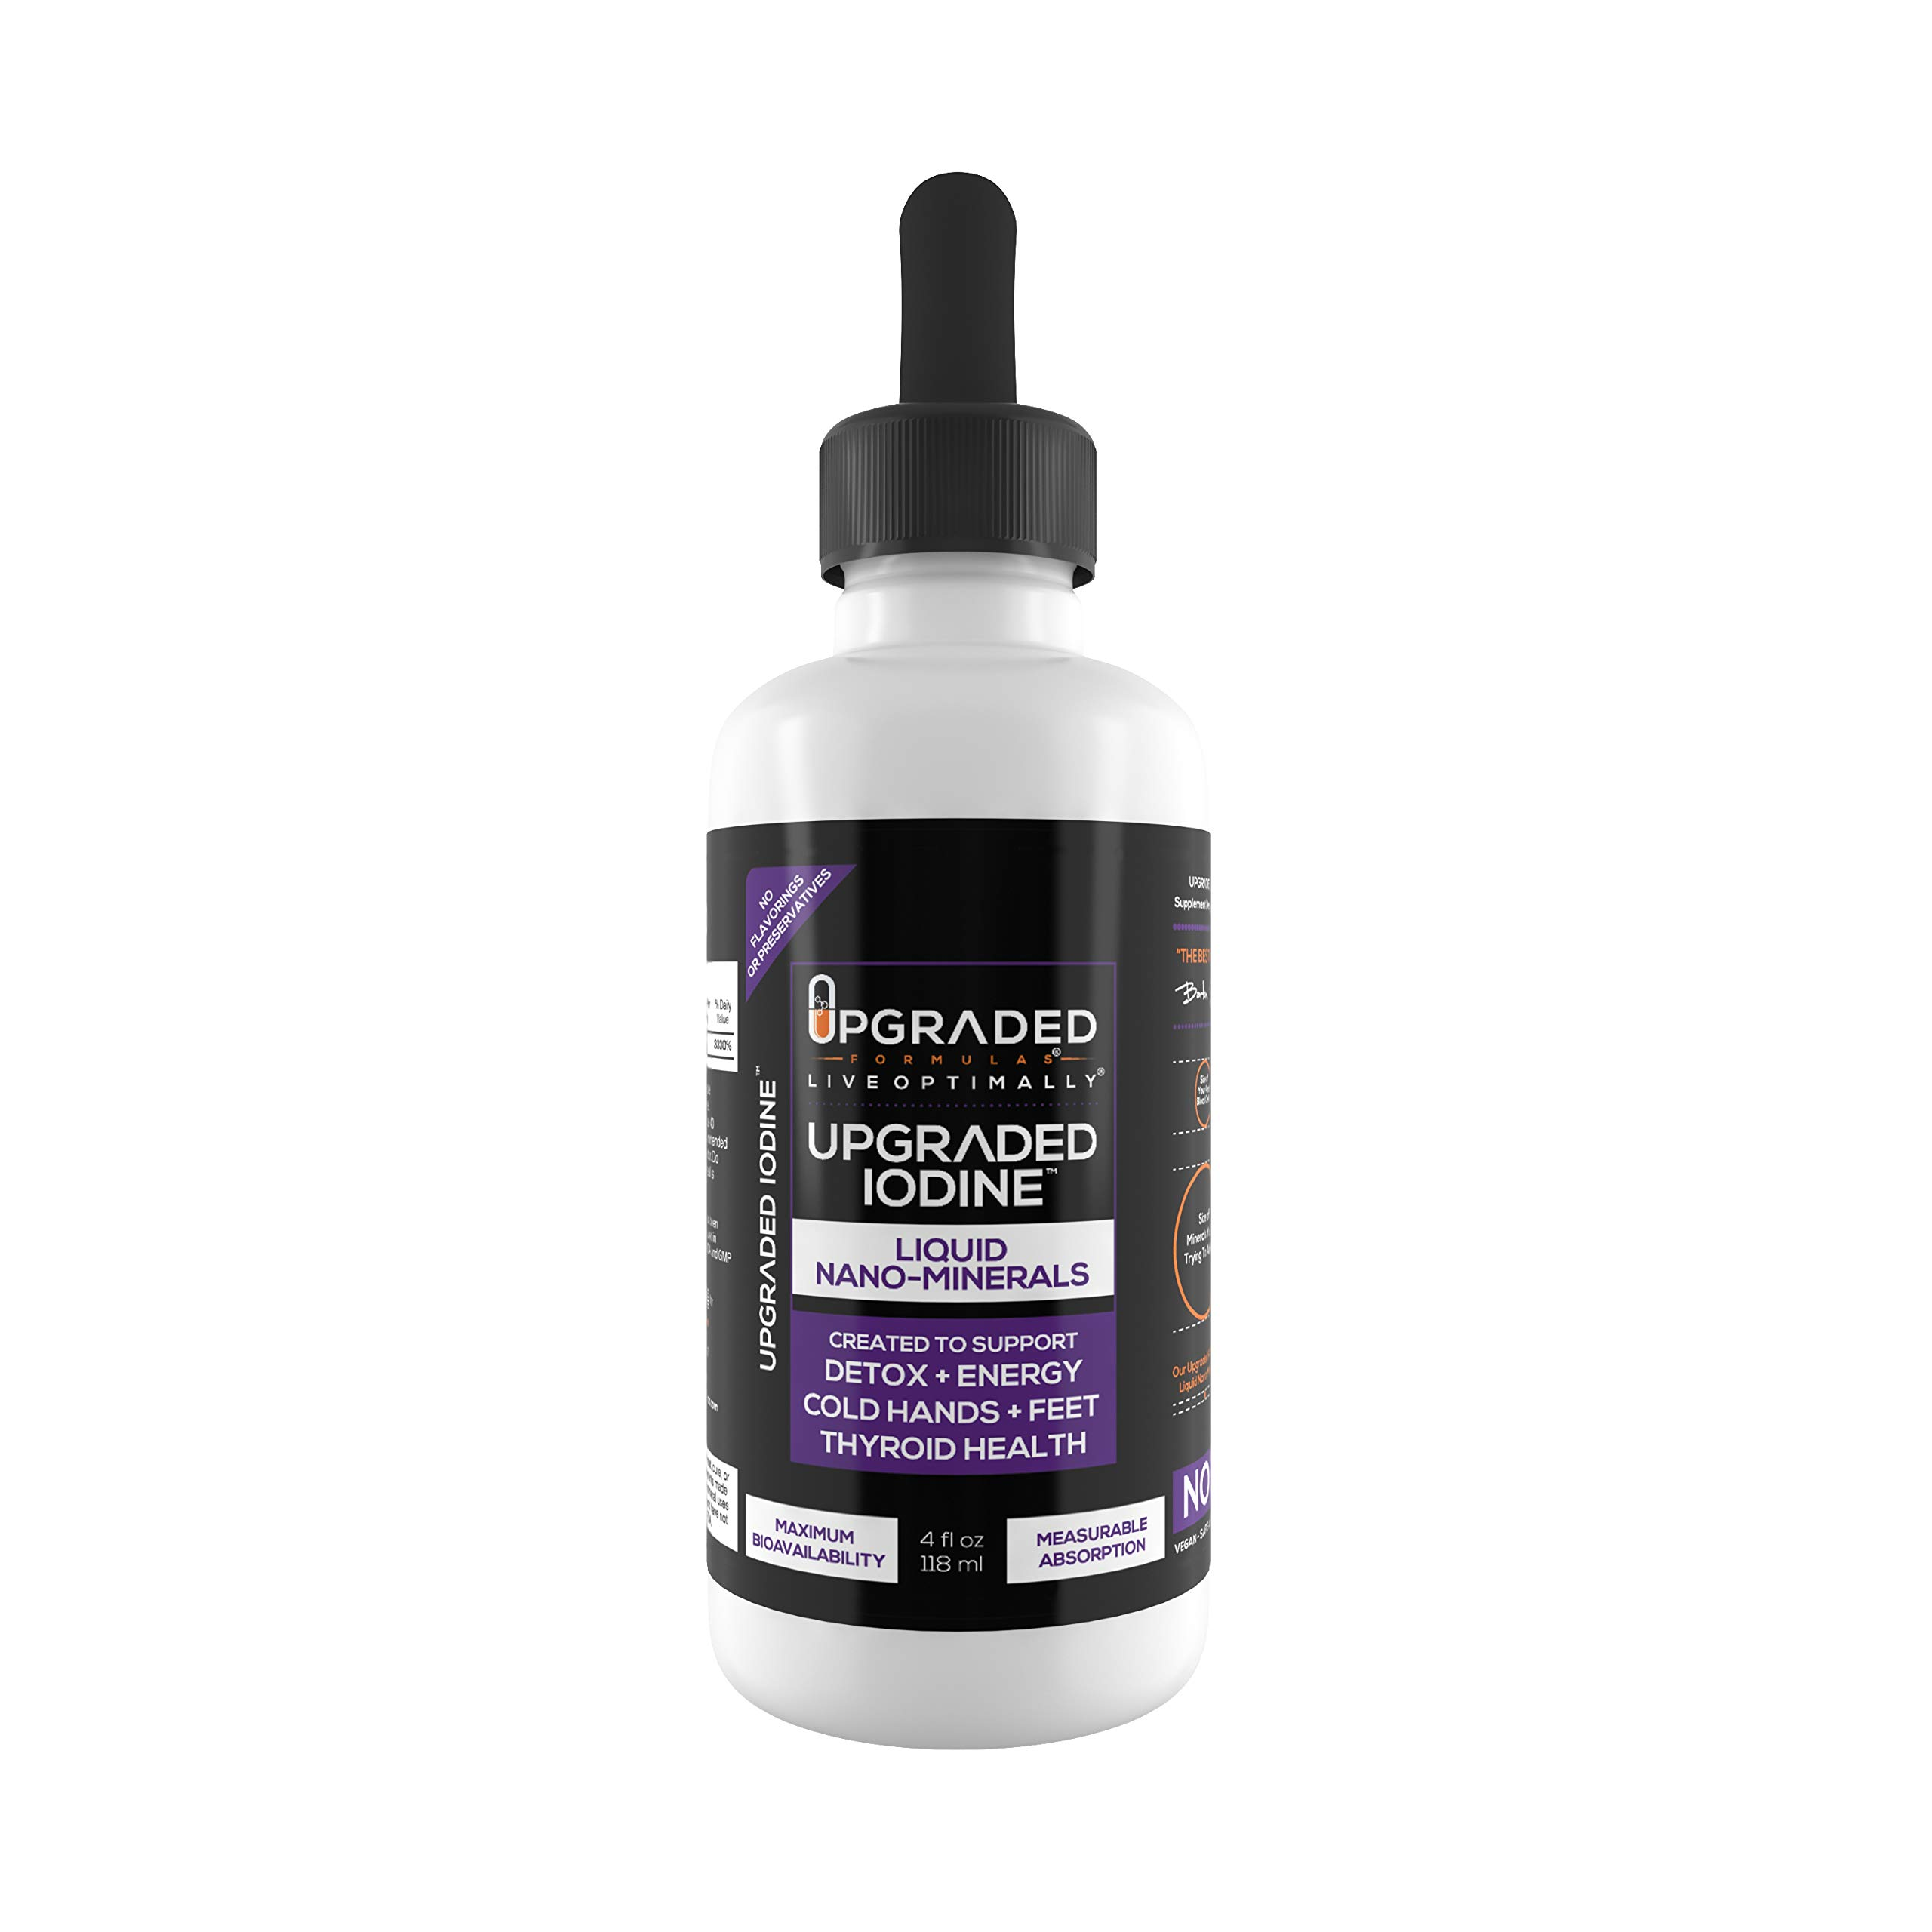 Upgraded Iodine: Keto + Paleo Friendly, Liquid Nano Minerals for Absorption That Skips Digestion. Great for Thyroid Support, Detox, Brain Fog, Faster Metabolism, Better Looking Hair, Skin, and Nails.